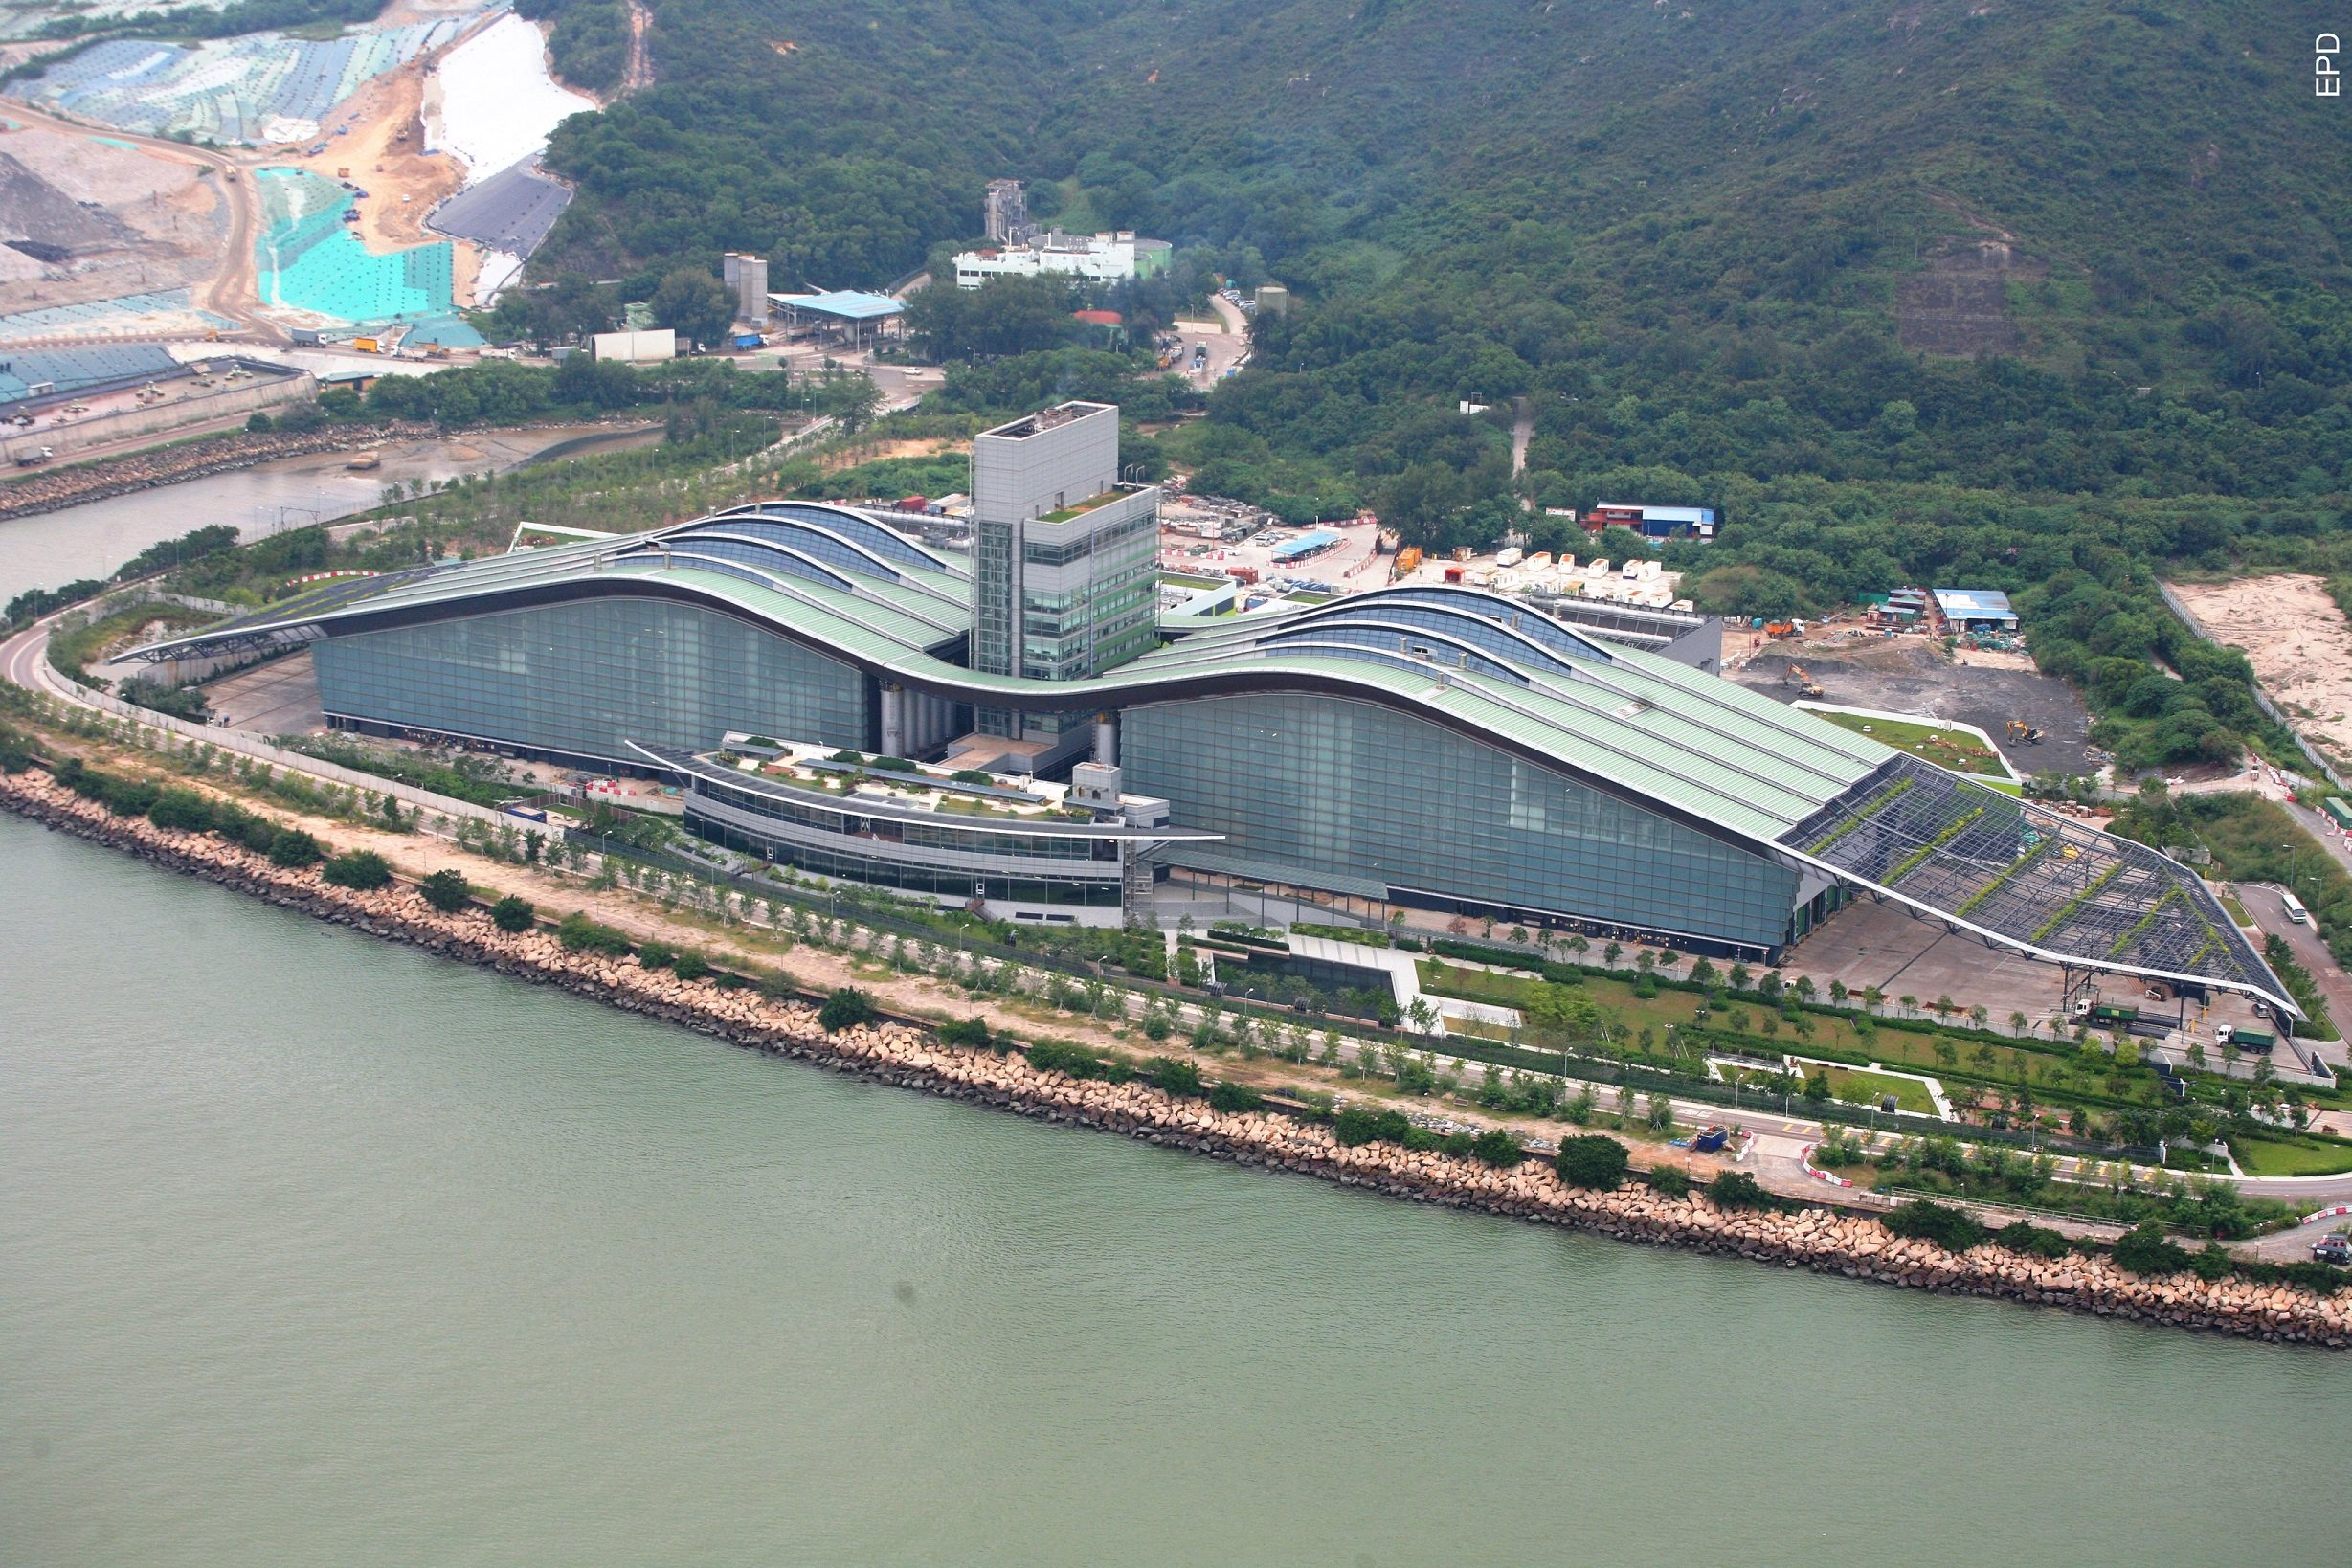 Aerial view of sludge treatment facility